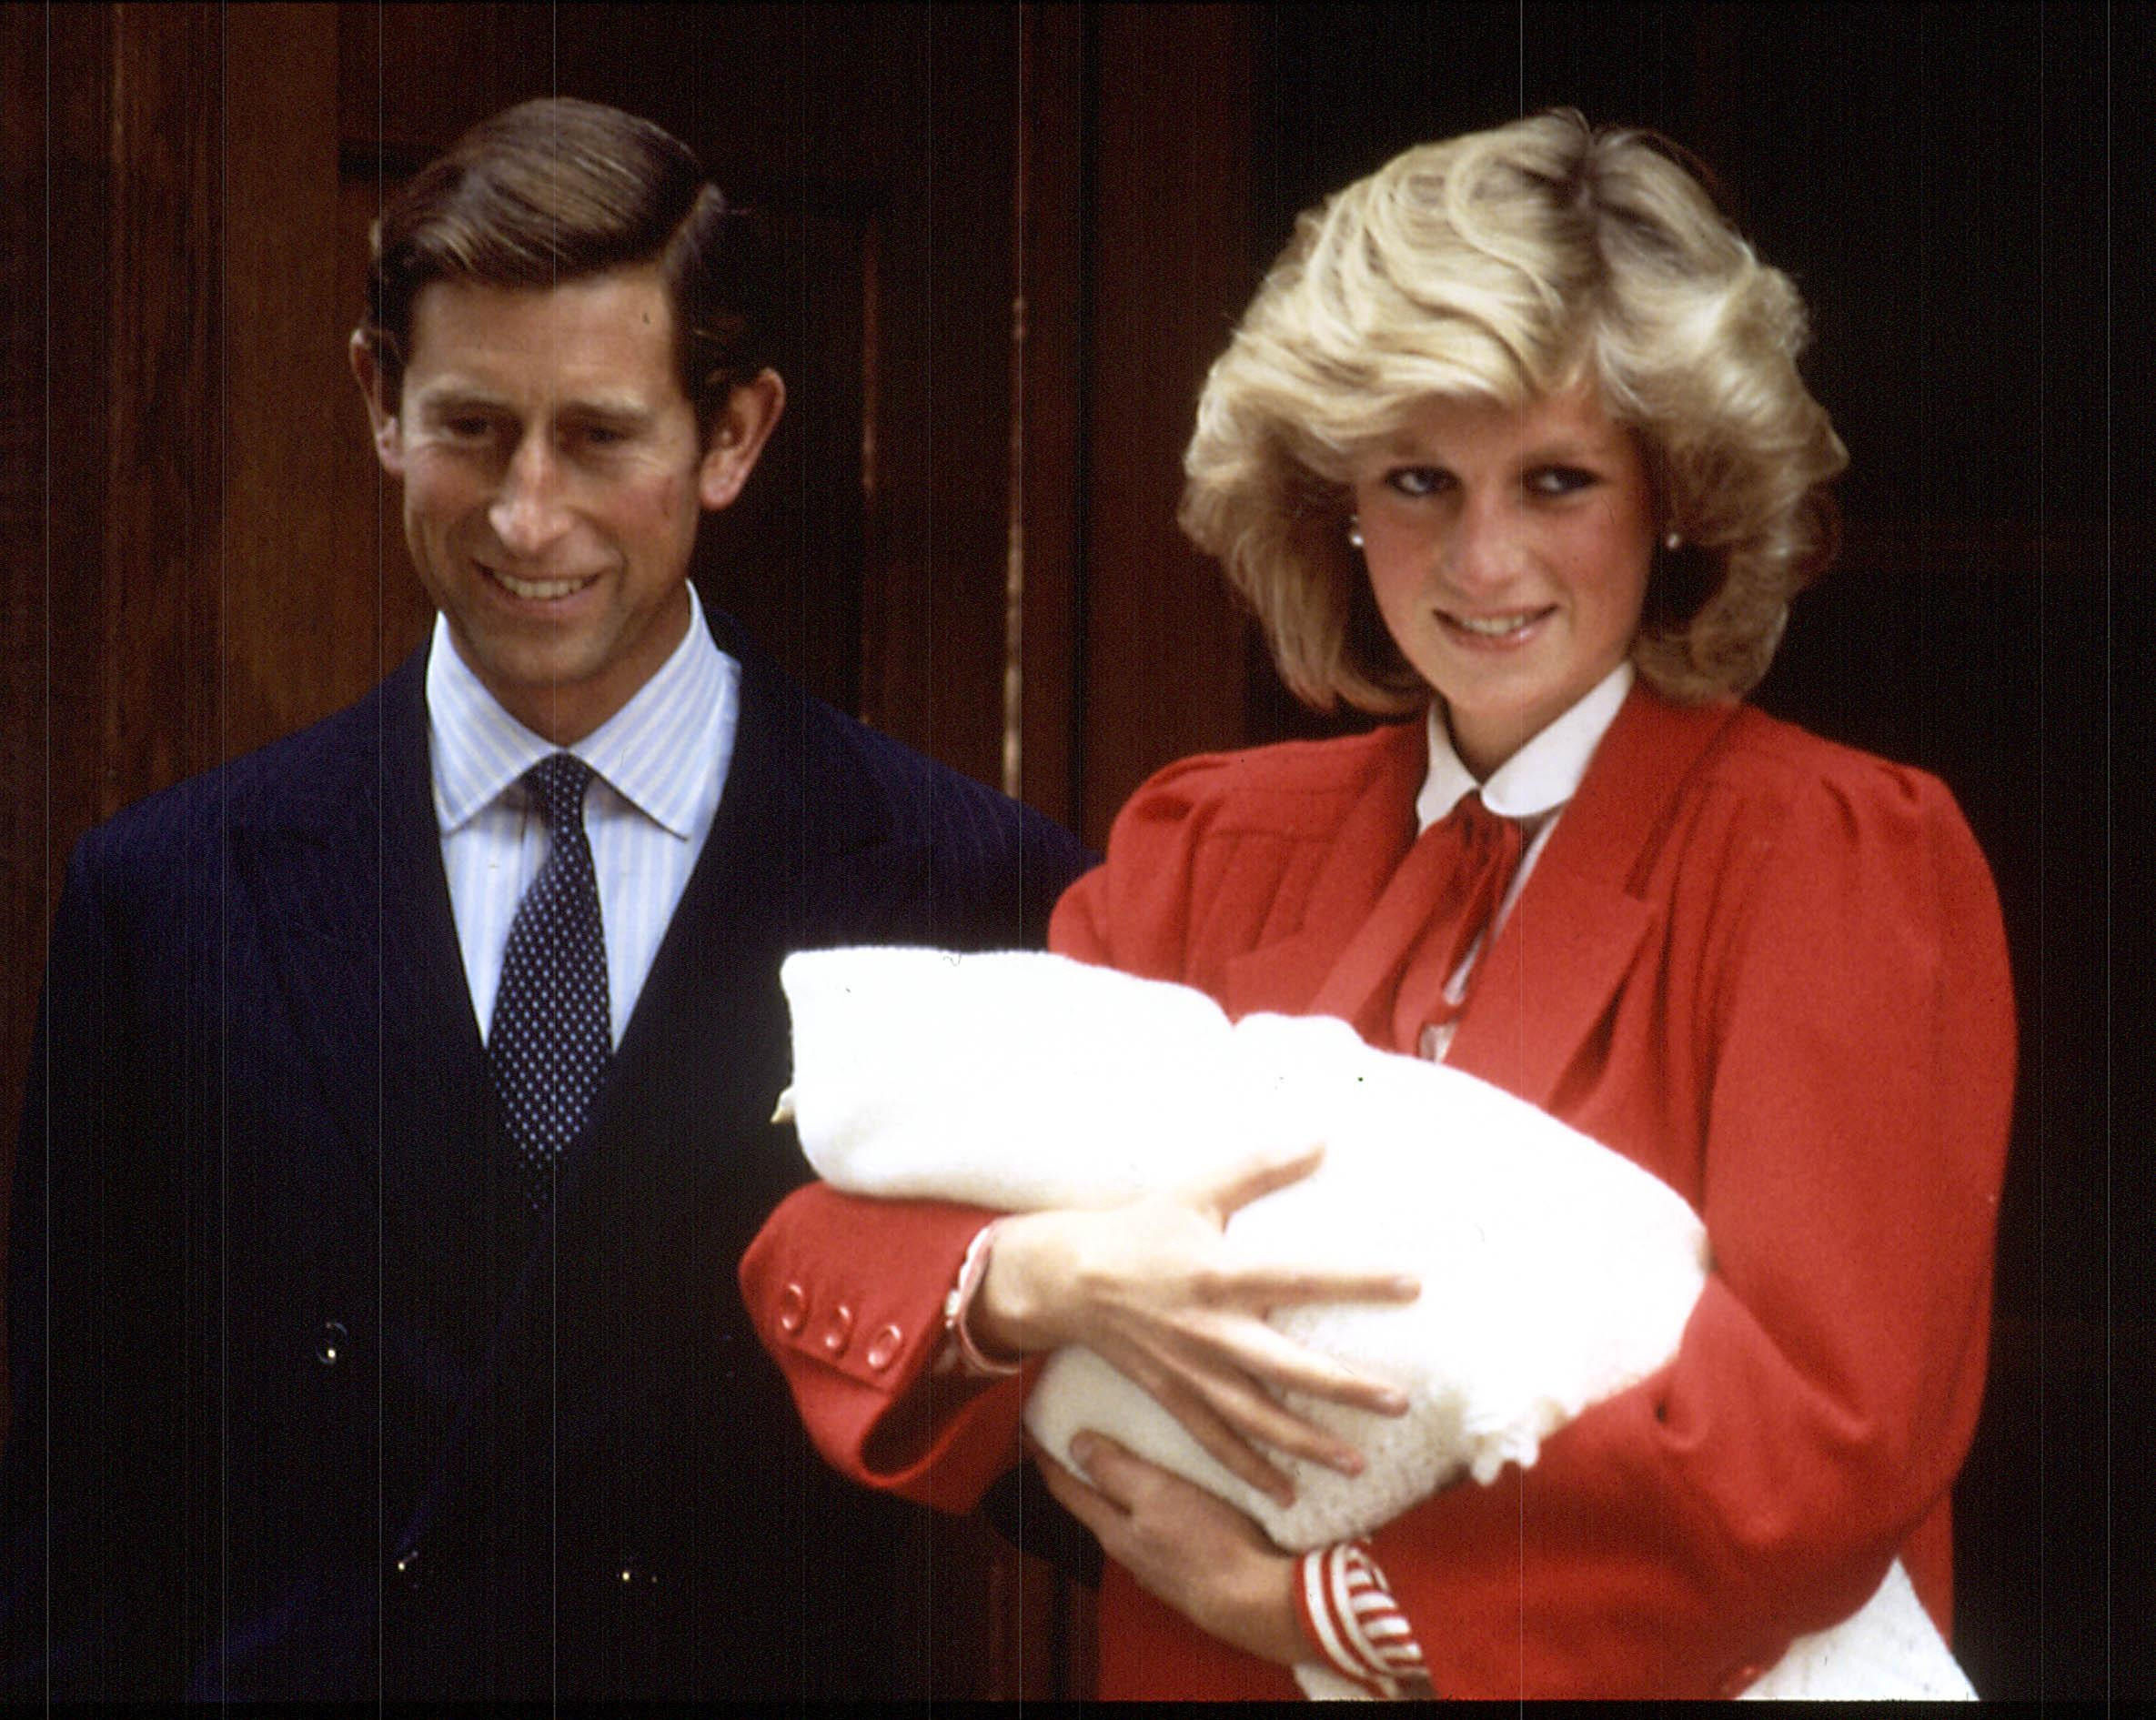 The Prince and Princess of Wales in 1984 following the birth of their second son, Prince Harry.